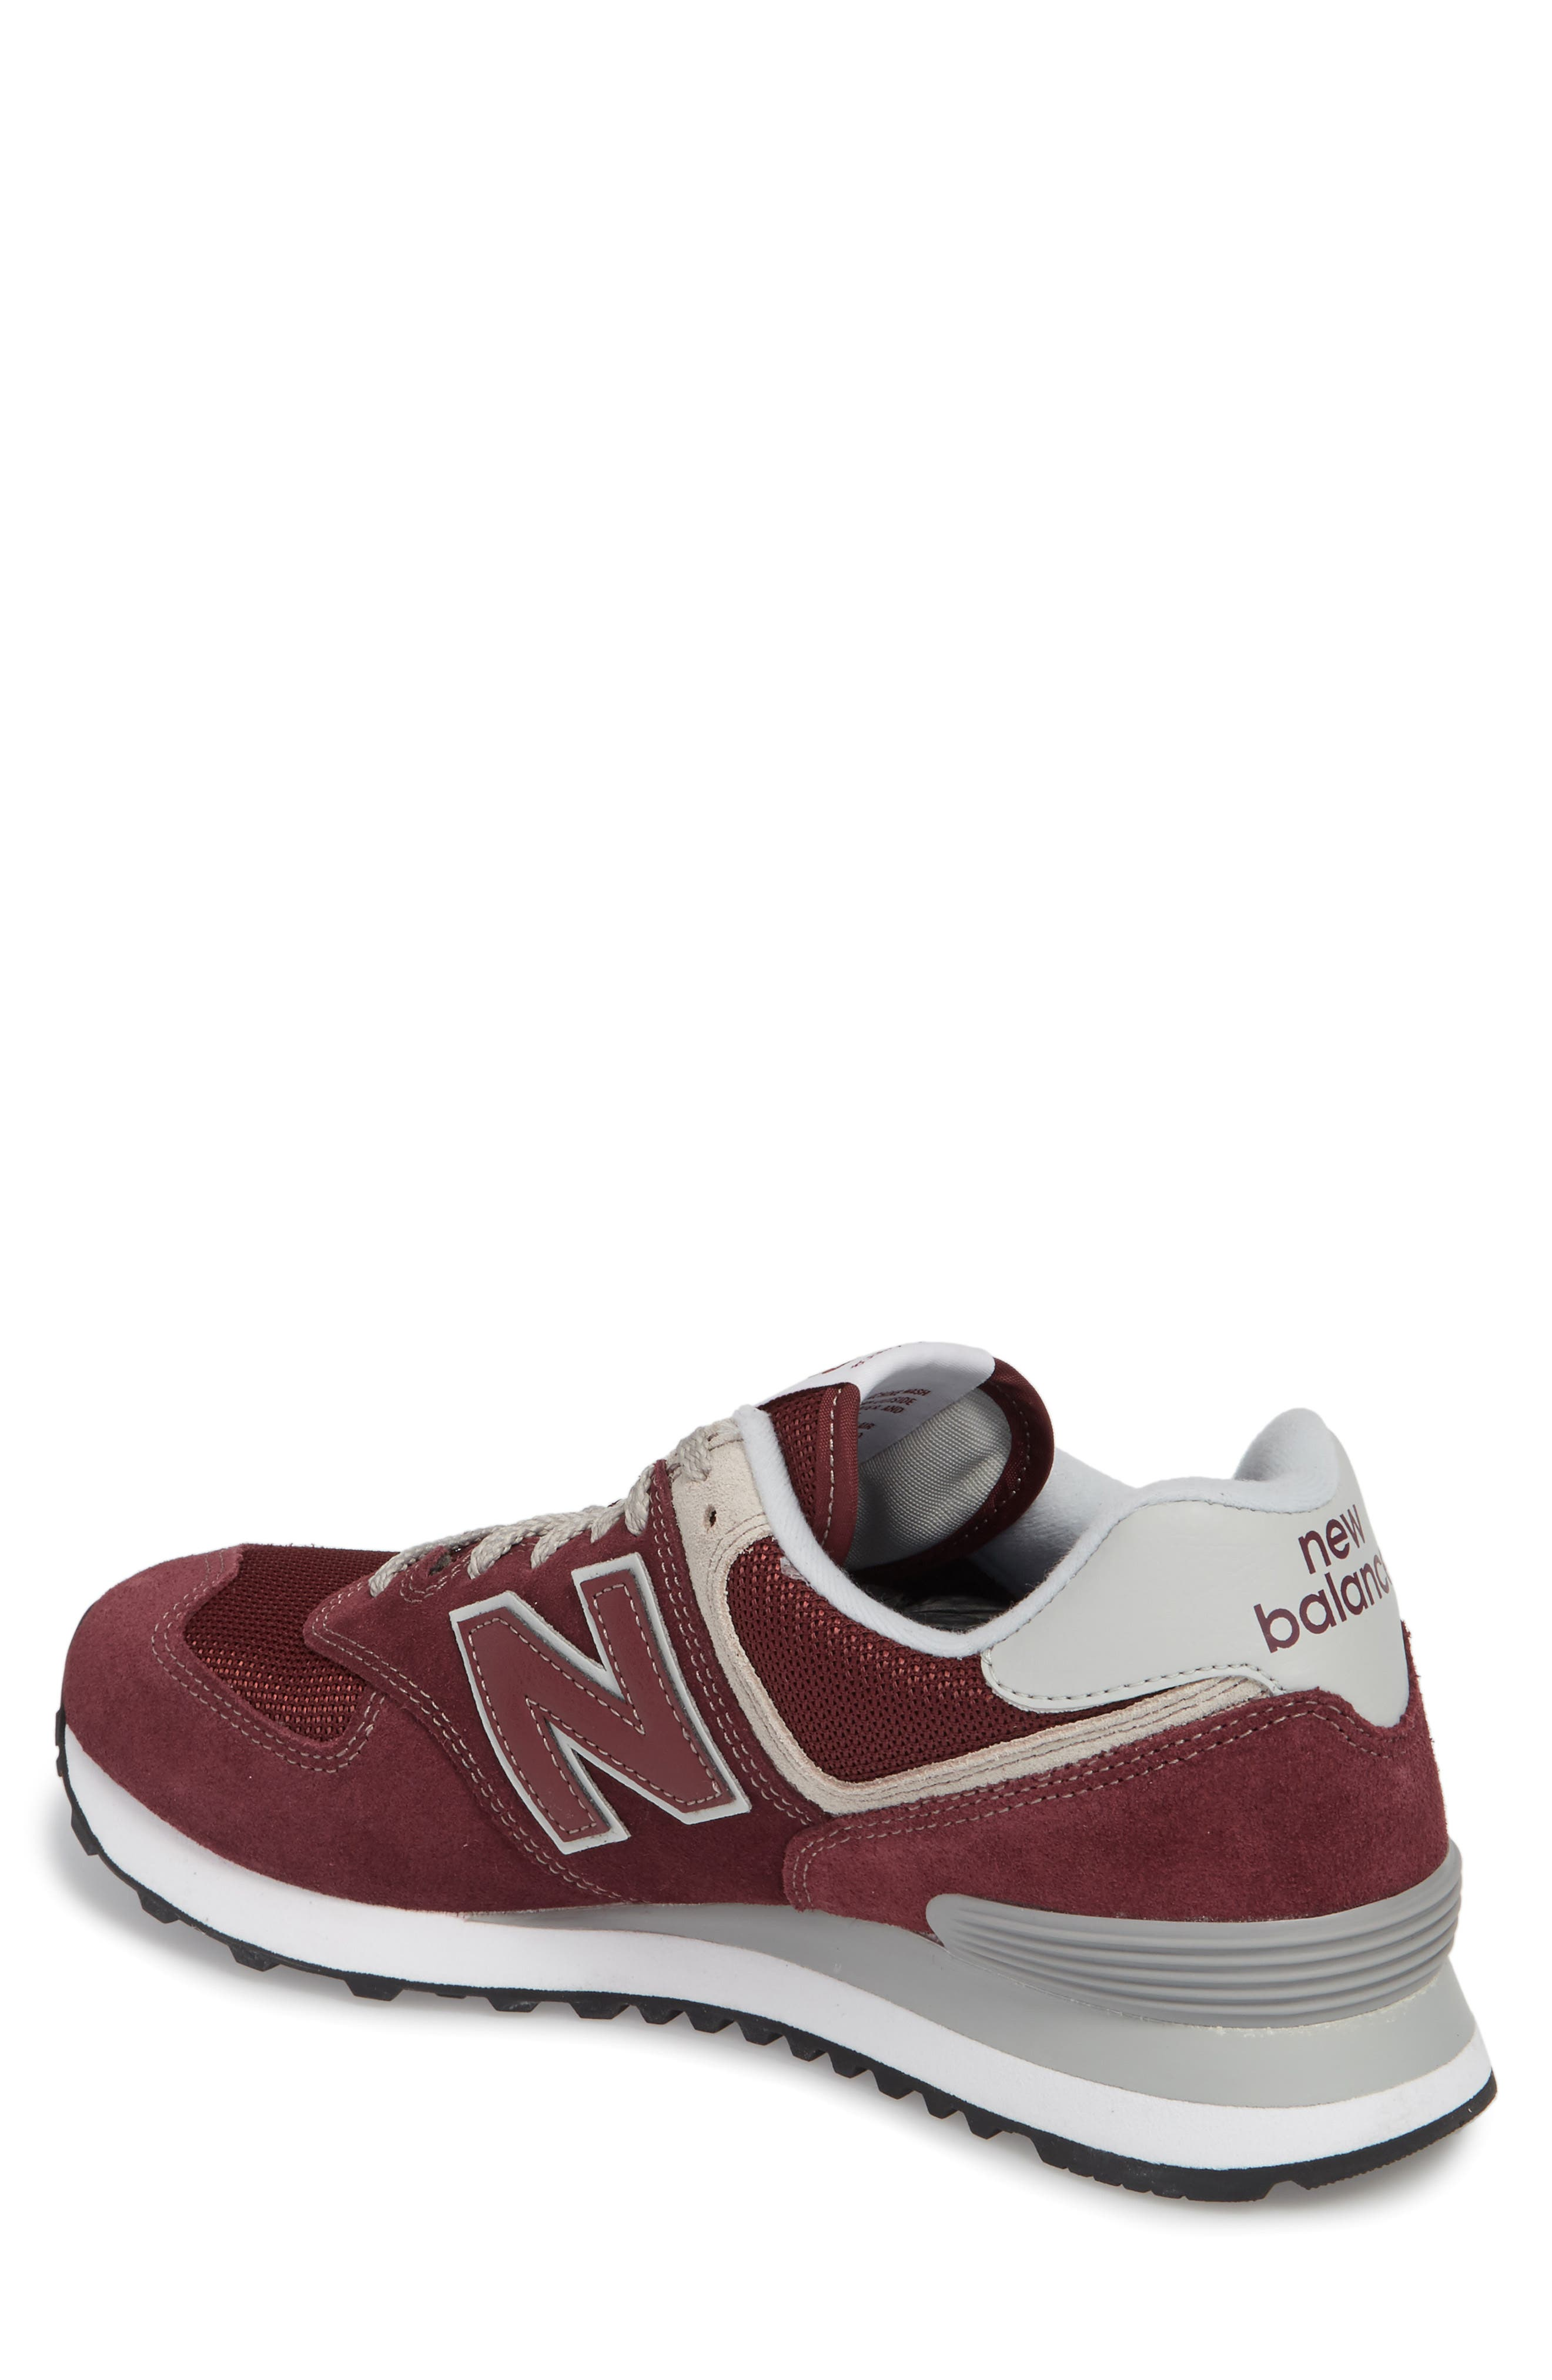 NEW BALANCE, 574 Classic Sneaker, Alternate thumbnail 2, color, BURGUNDY